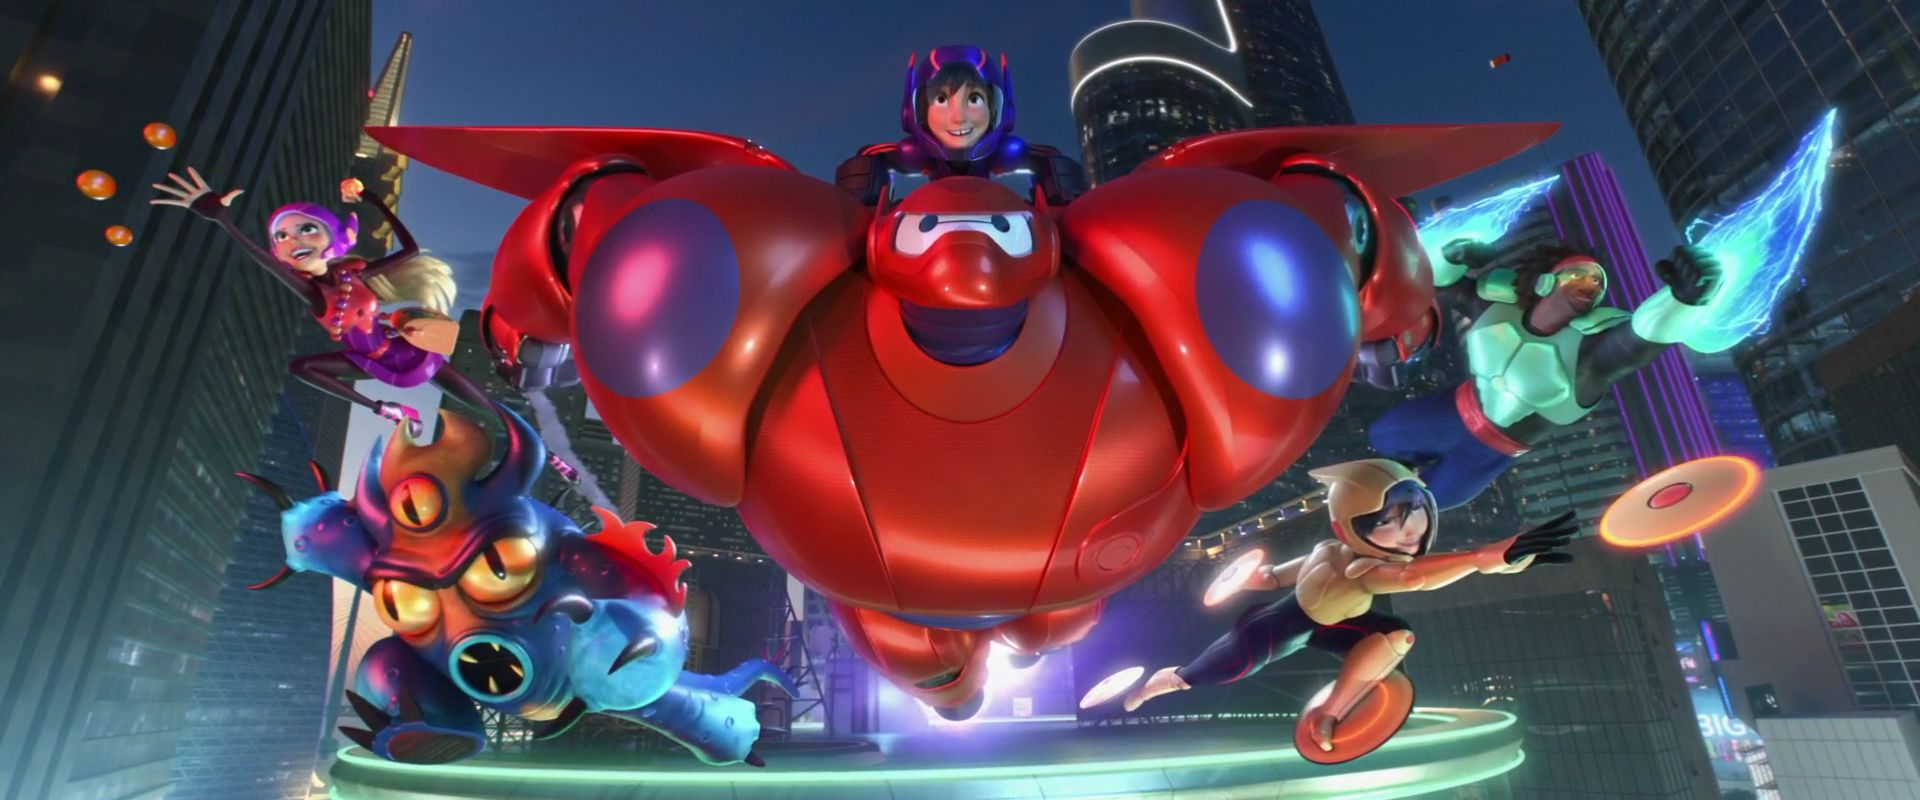 Nice Images Collection: Big Hero 6 Desktop Wallpapers